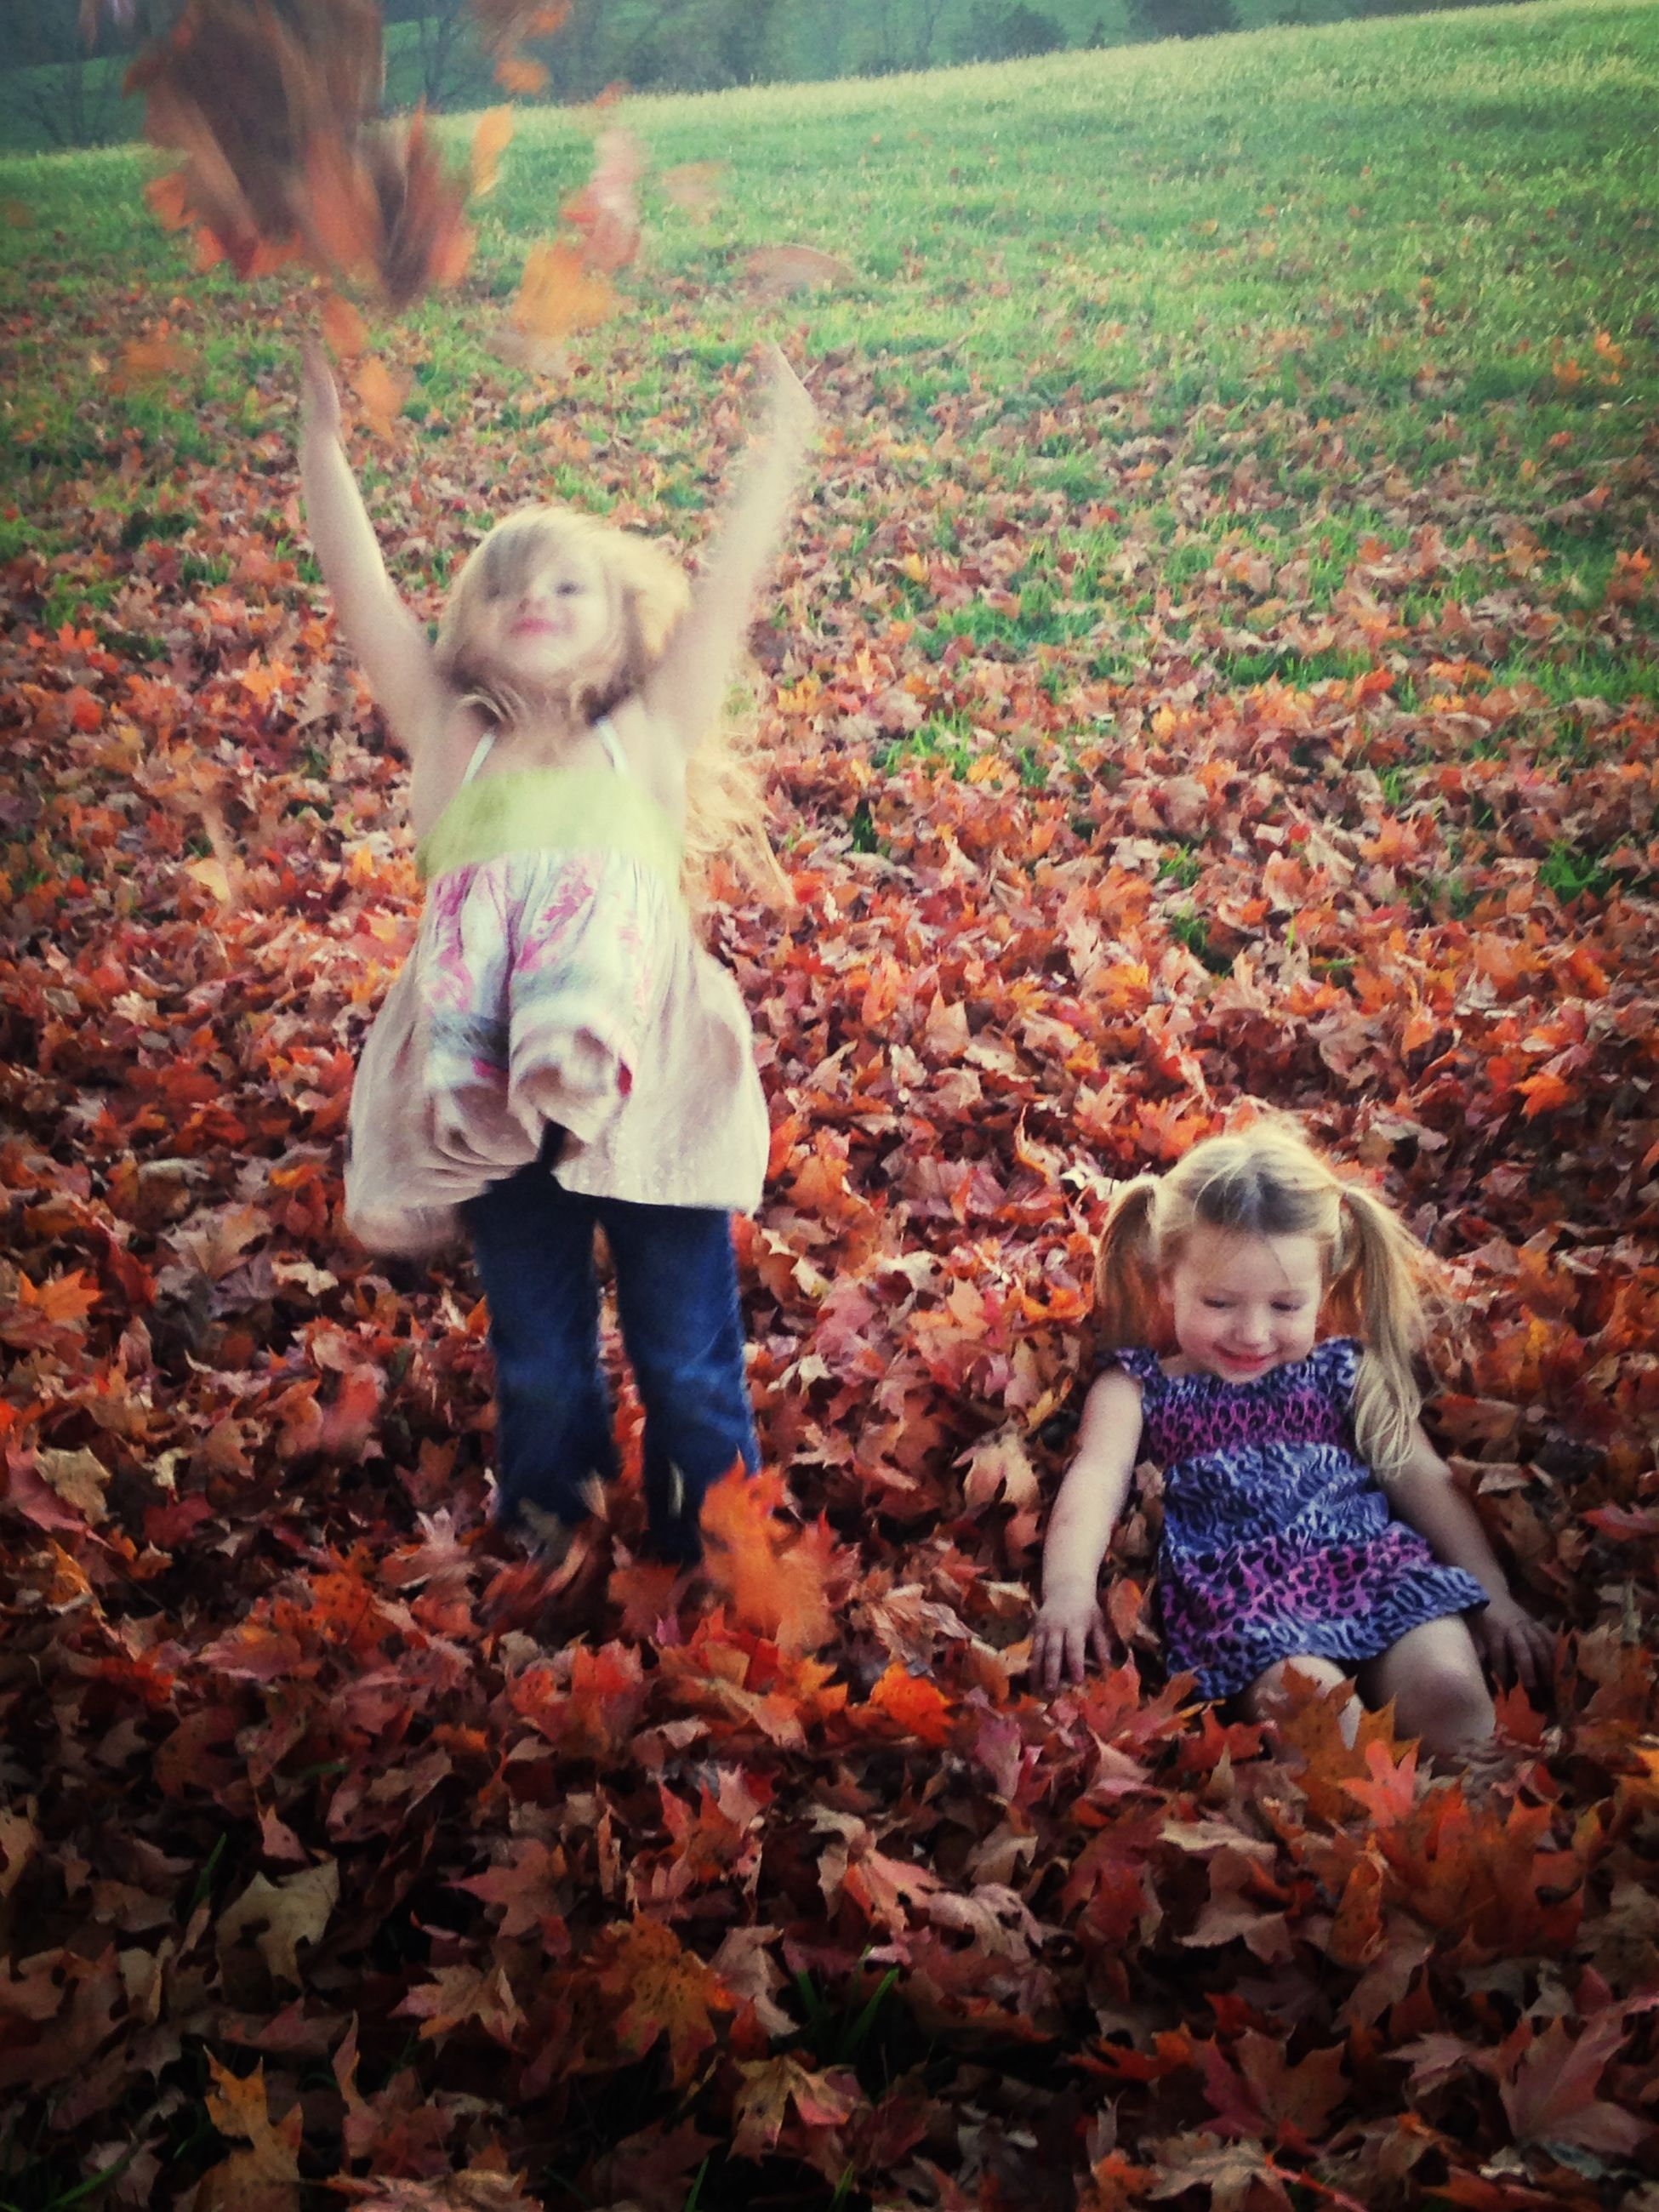 childhood, elementary age, boys, innocence, full length, person, girls, cute, autumn, casual clothing, lifestyles, leisure activity, field, playful, looking at camera, portrait, happiness, leaf